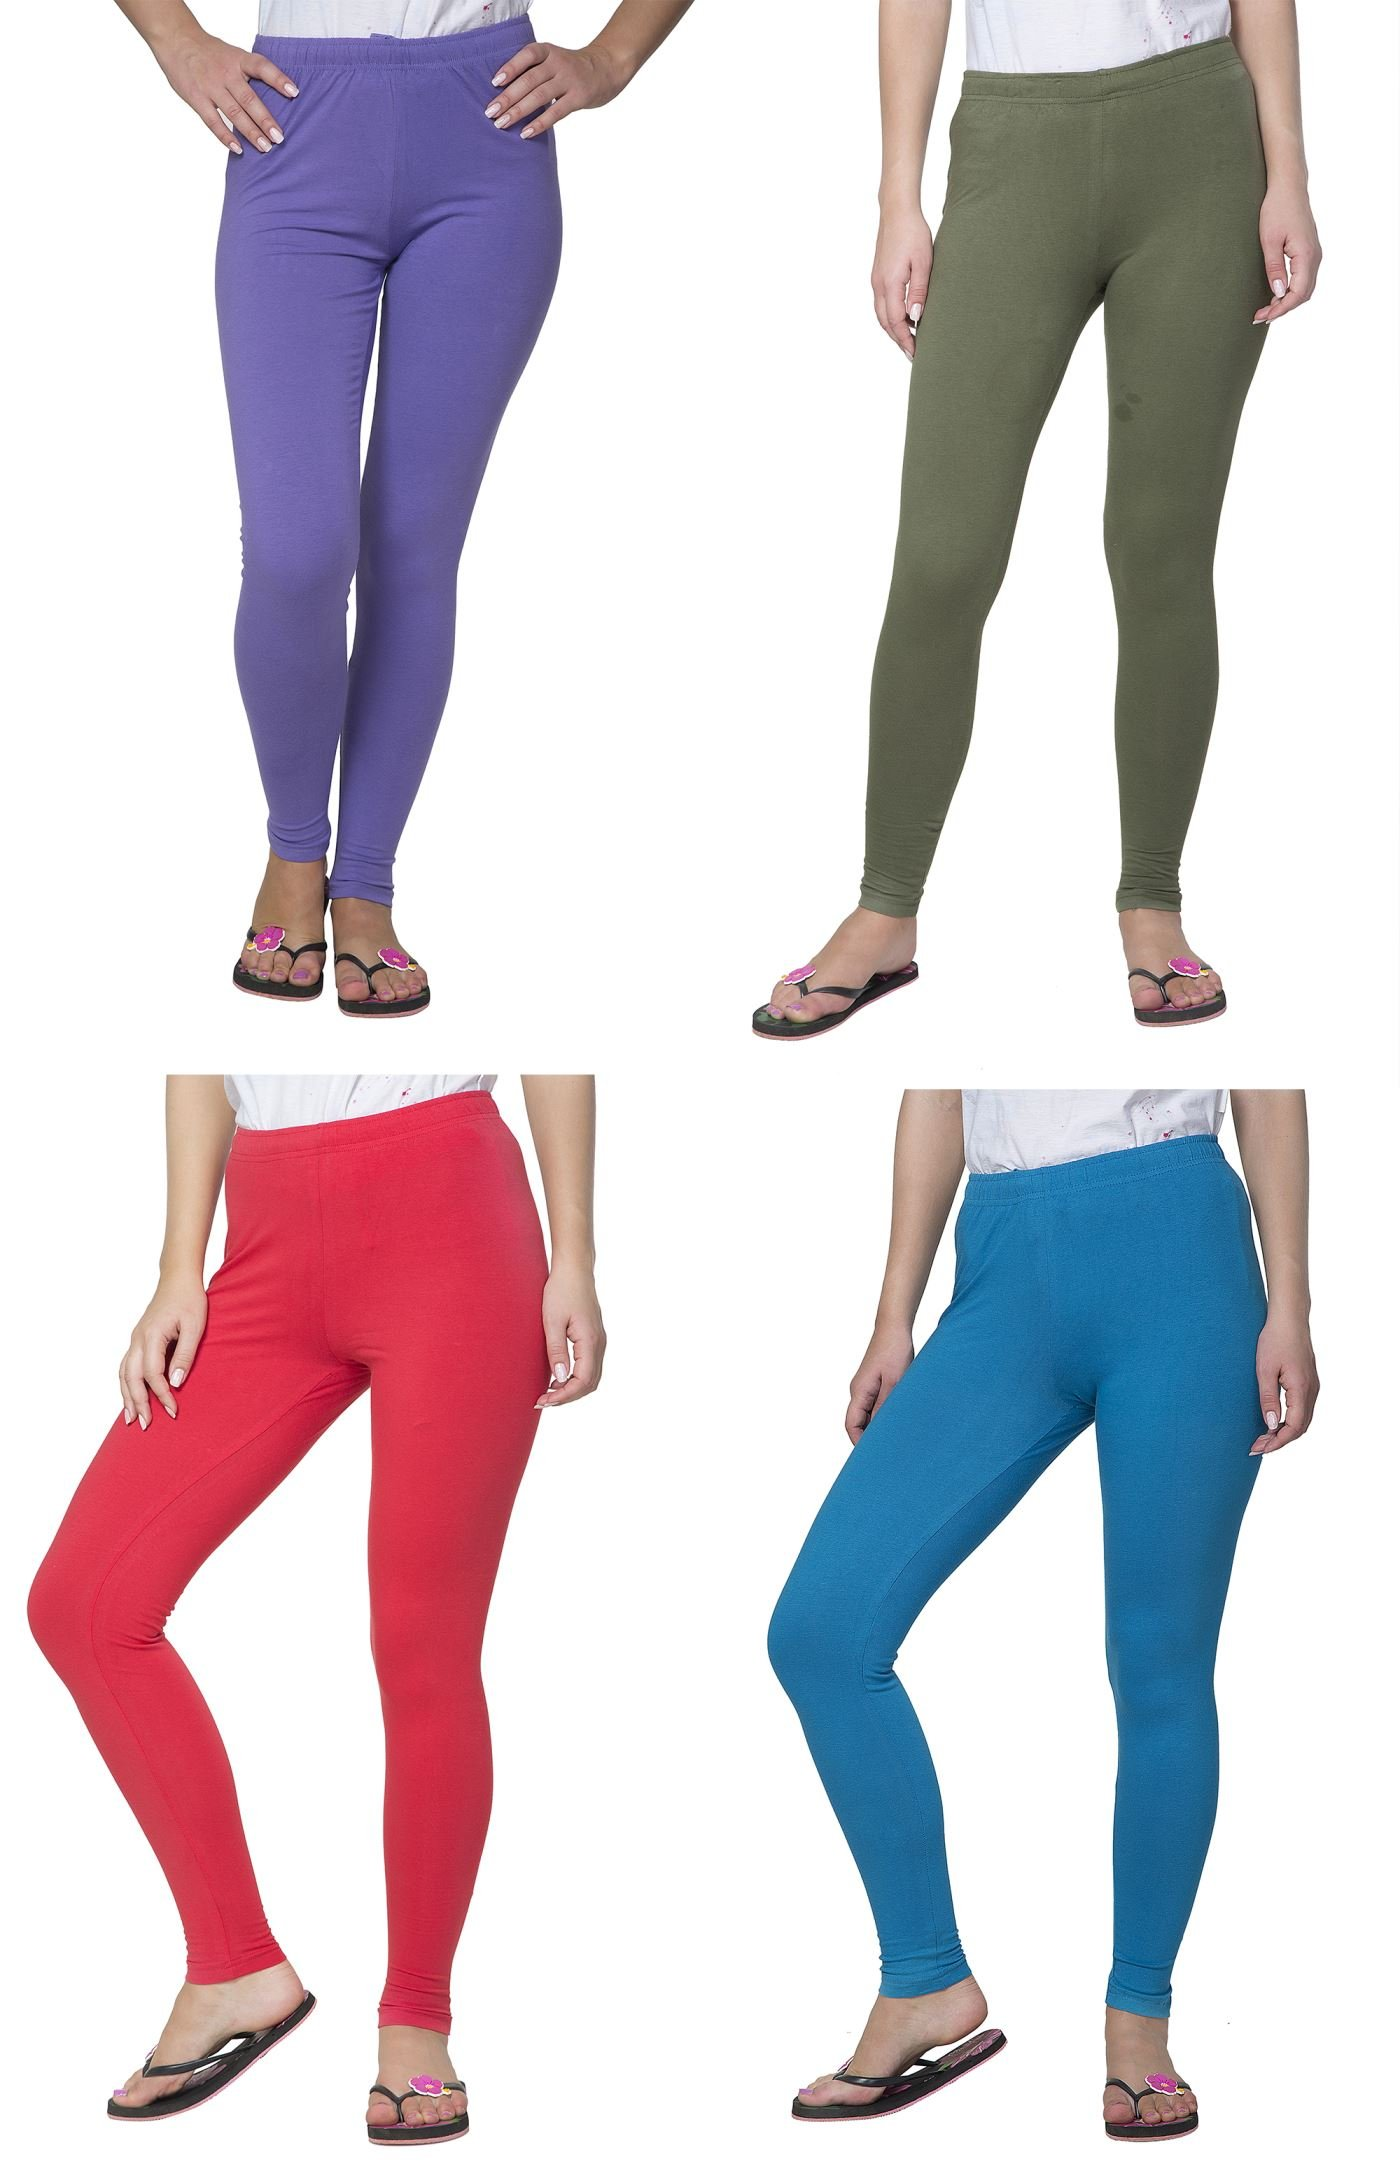 Clifton Women's Cotton Spandex Fine Jersey Leggings Pack of 4-Assorted-1-2XL by Clifton (Image #1)